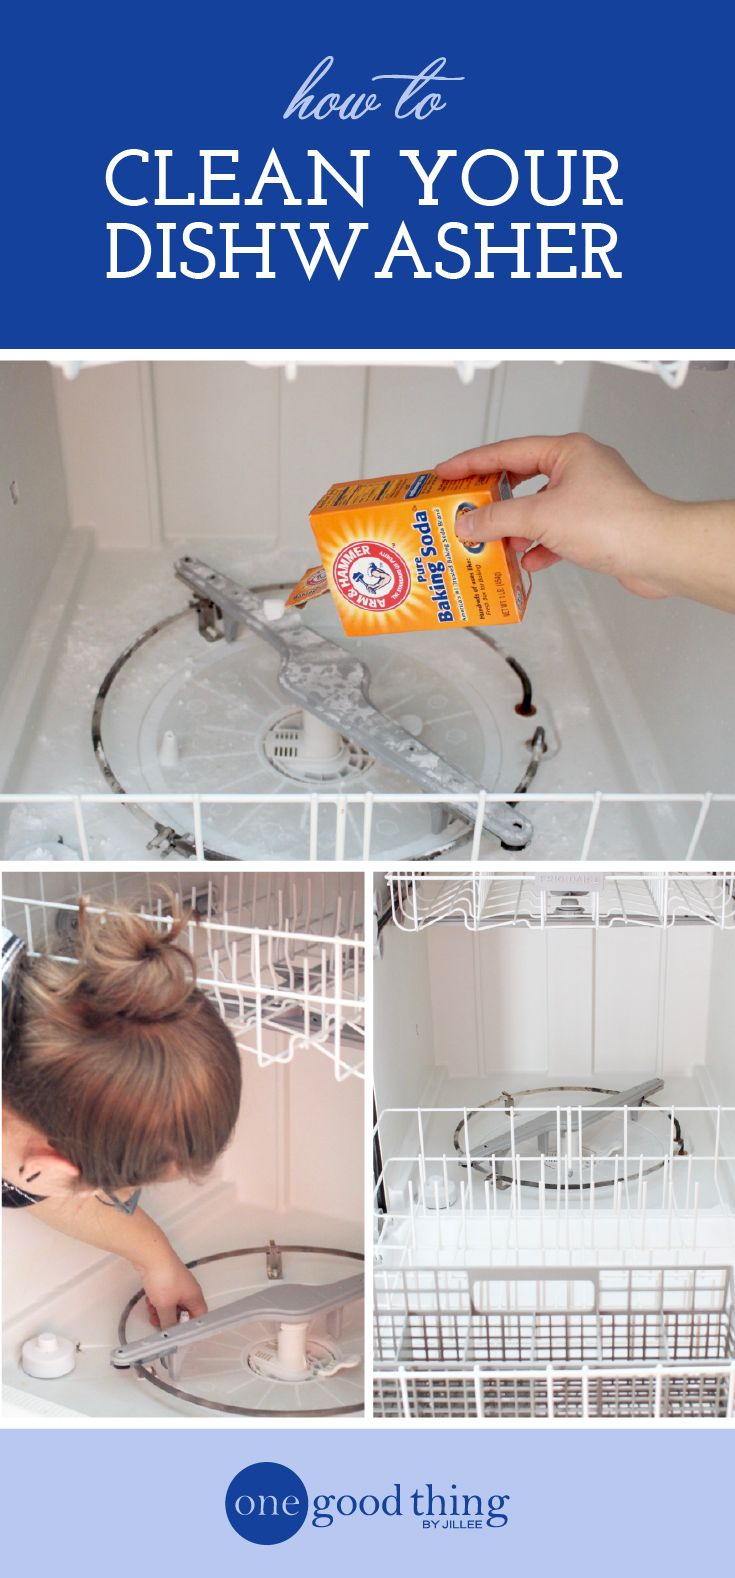 Uncategorized Cleaning Kitchen Appliances best 25 kitchen cleaning tips ideas on pinterest how to clean your dishwasher in 3 easy steps